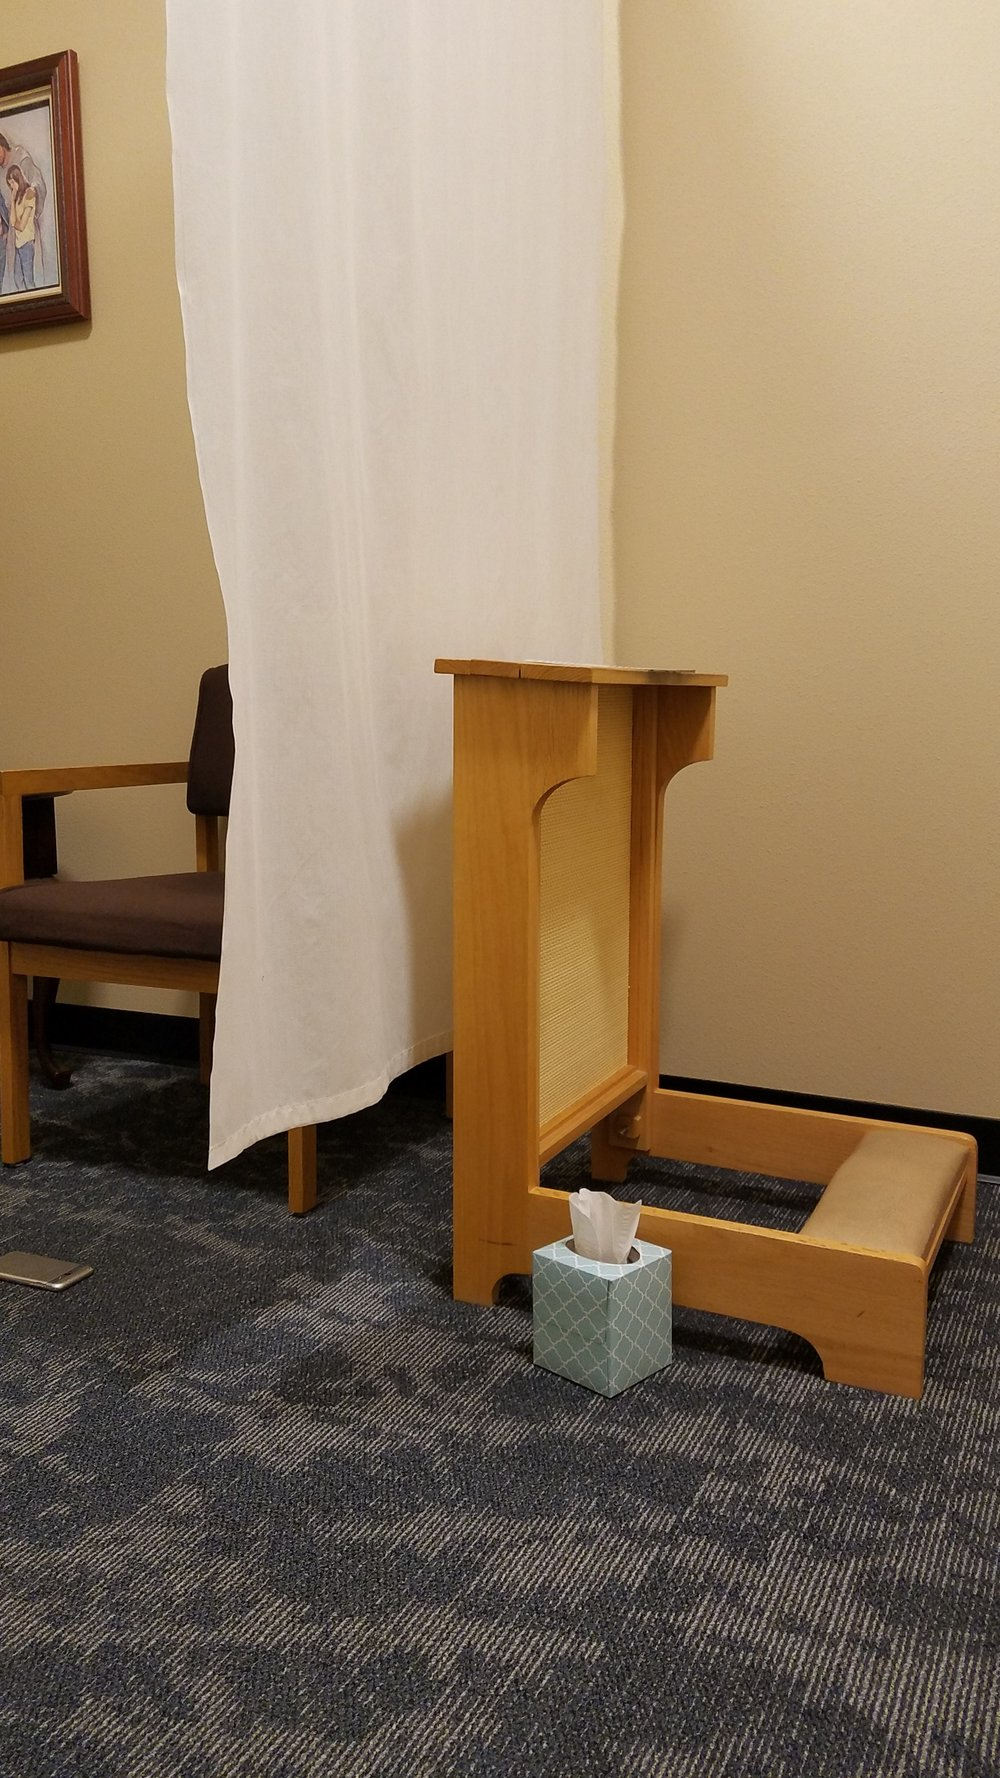 A typical confessional setup.